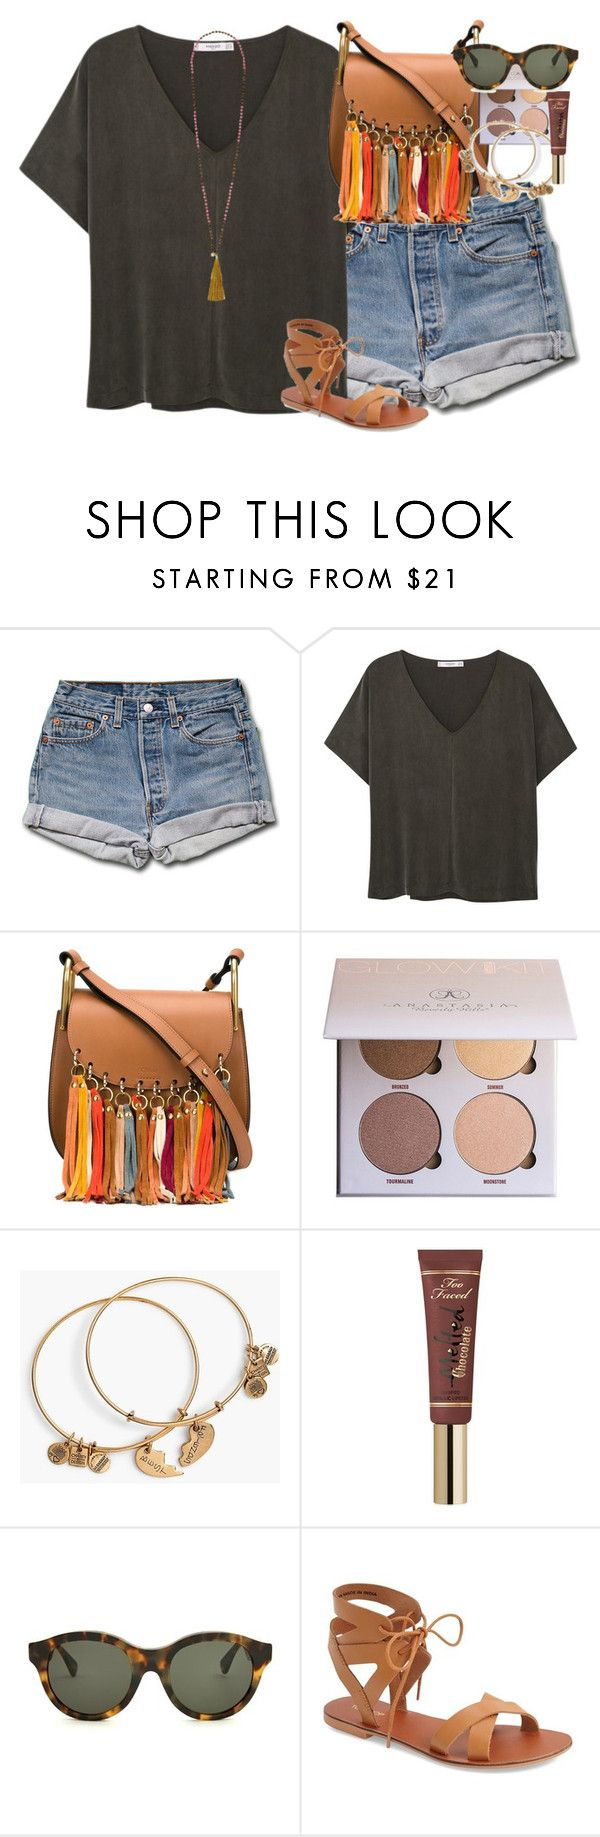 """at the pool !!"" by smbprep ❤ liked on Polyvore featuring MANGO, Chloé, Alex and Ani, Too Faced Cosmetics, RetroSuperFuture, Topshop and French Connection"